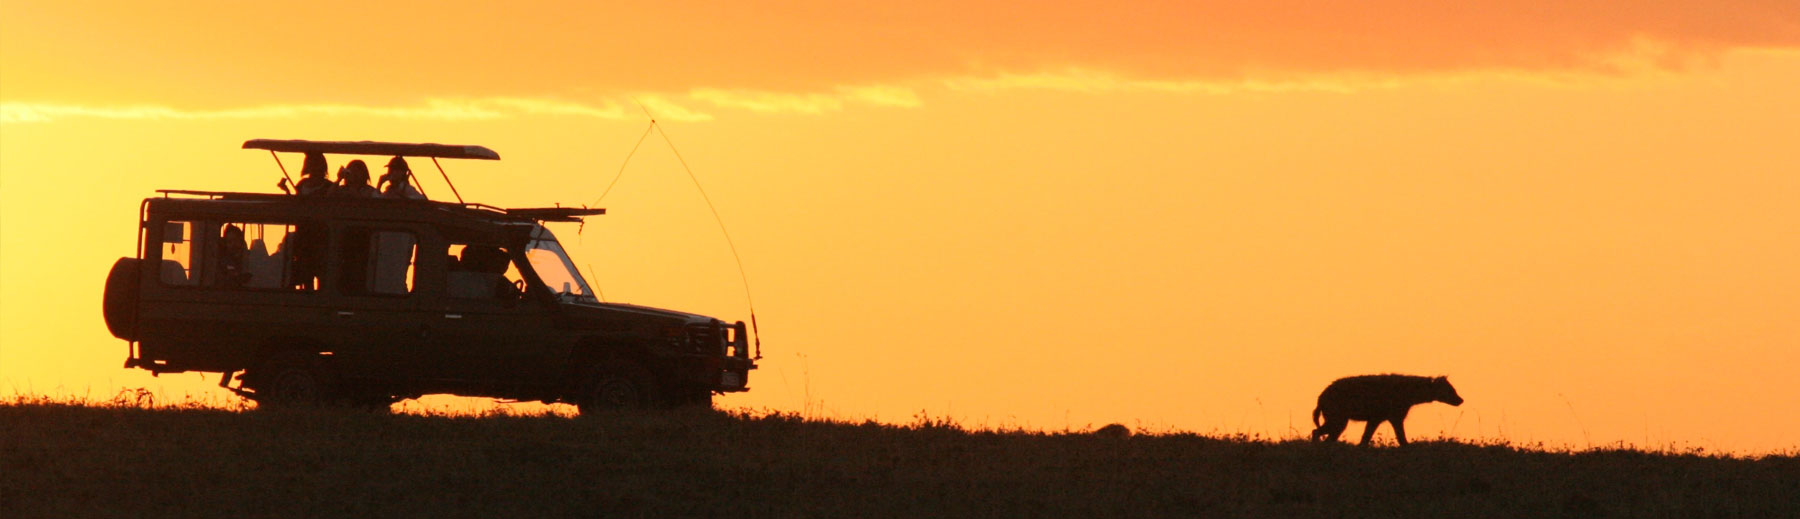 A game drive vehicle tracking a hyena at sunset